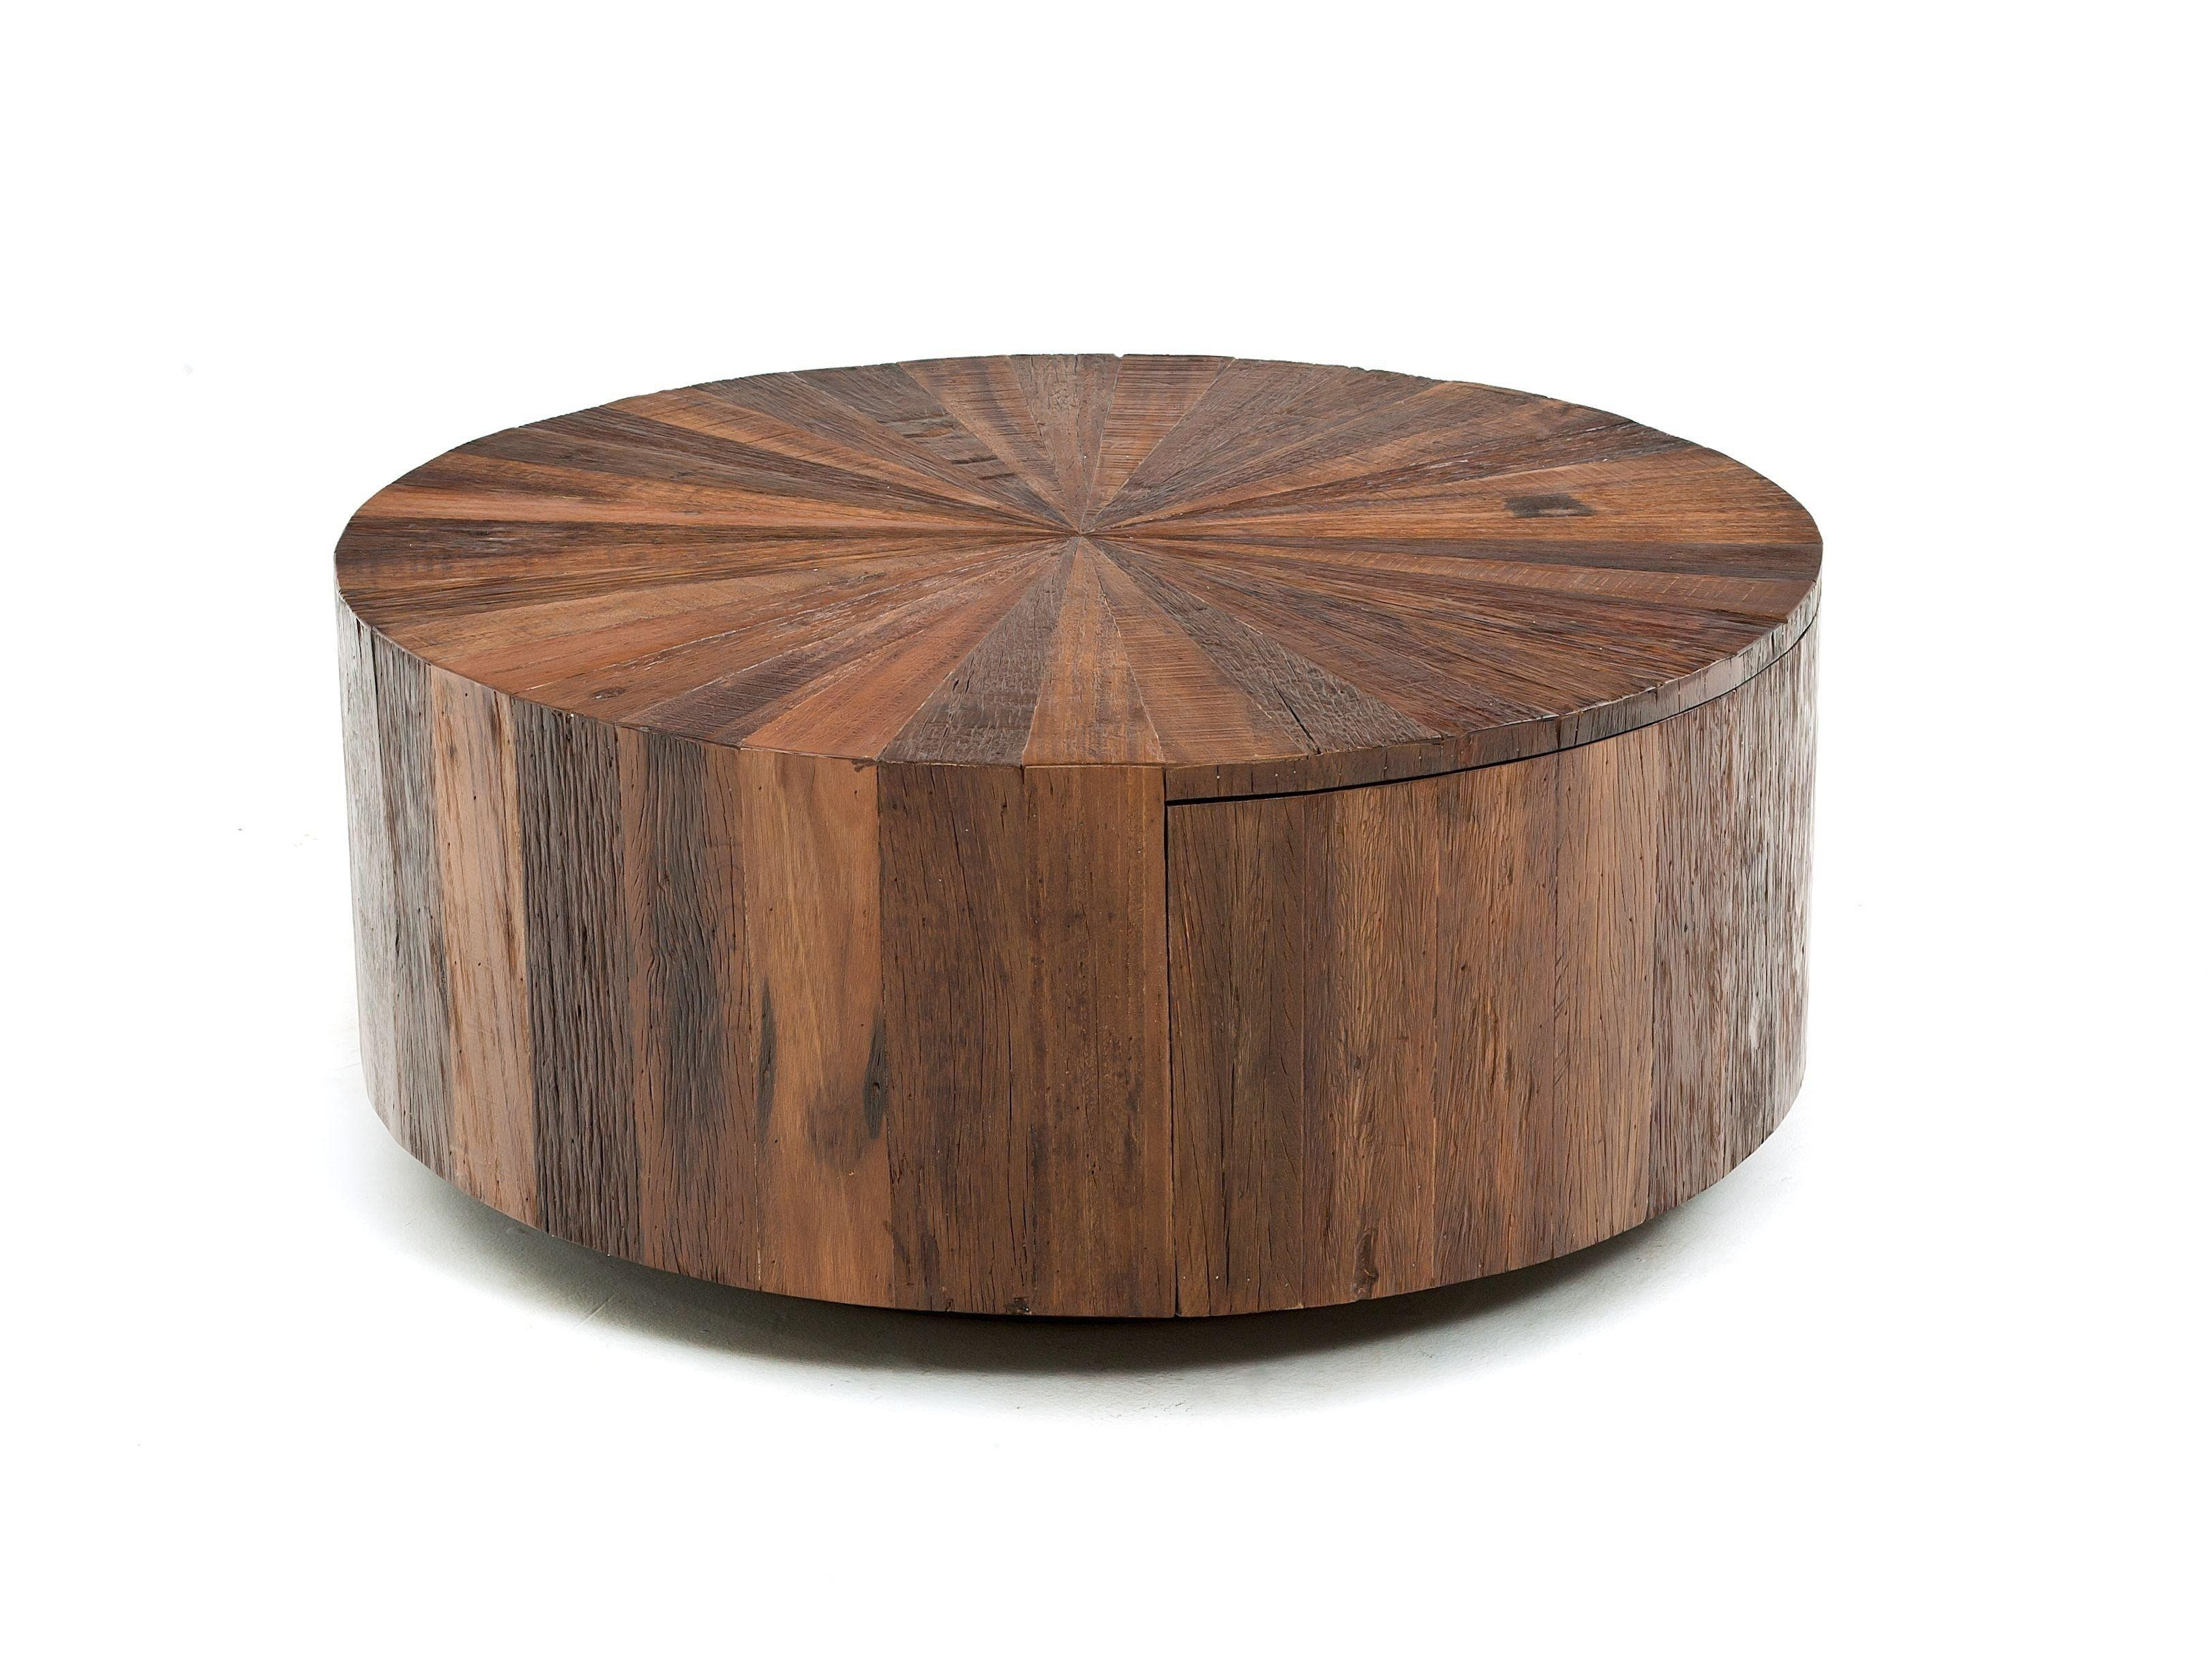 Round Rustic Chic Coffee Table With Drawer Wood Coffee Table Rustic Chic Coffee Table Coffee Table [ 2427 x 3244 Pixel ]